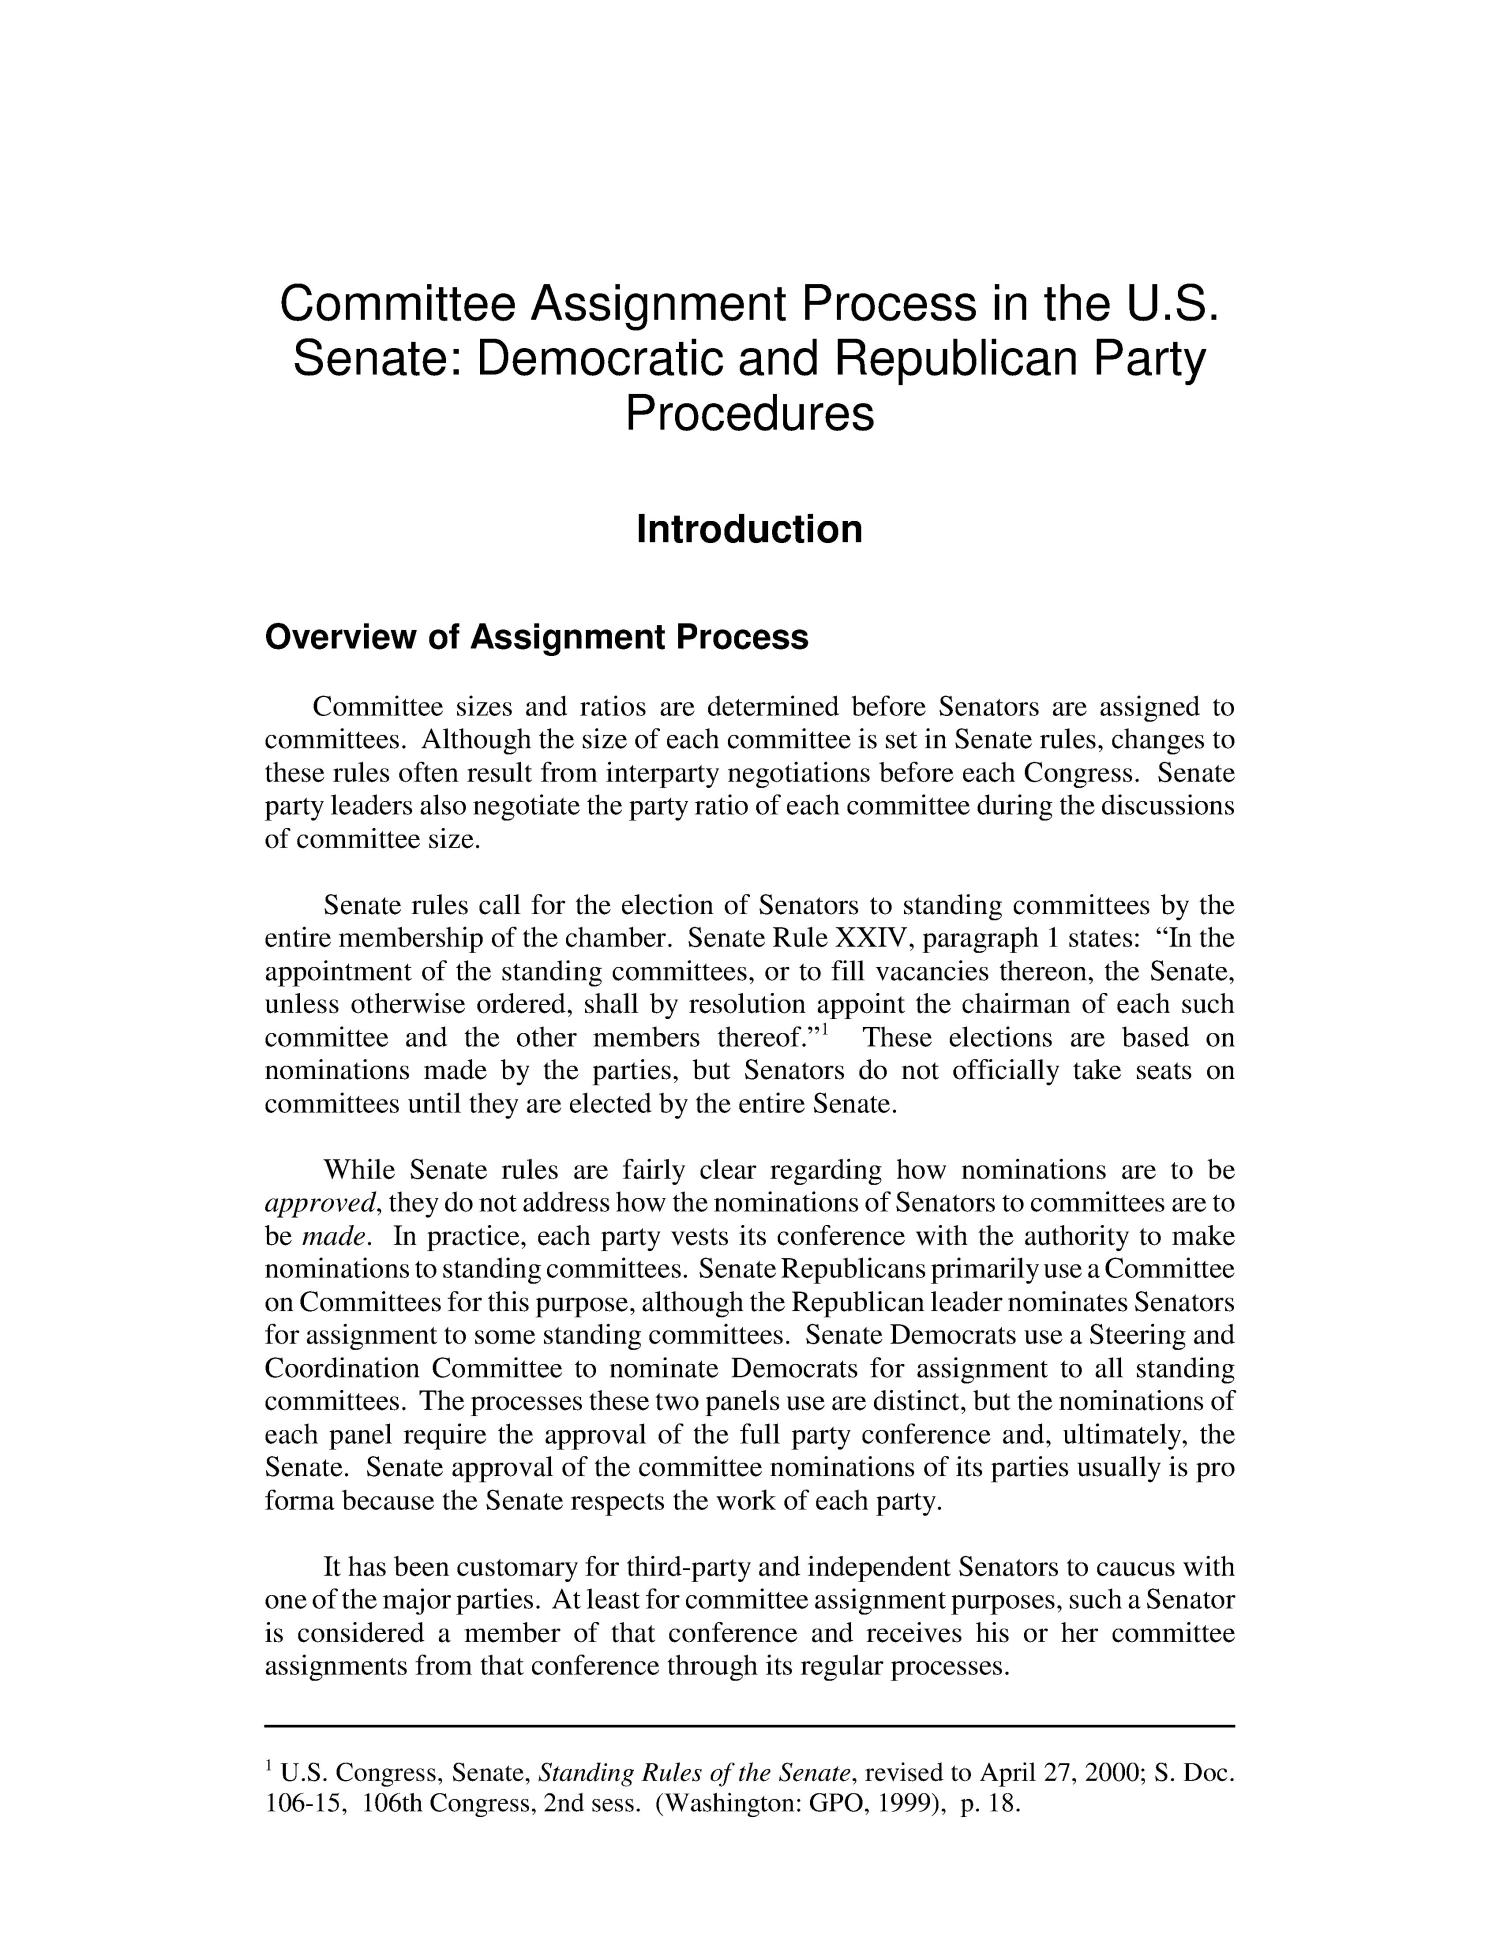 Committee Assignment Process in the U.S. Senate: Democratic and Republican Party Procedures                                                                                                      [Sequence #]: 4 of 15